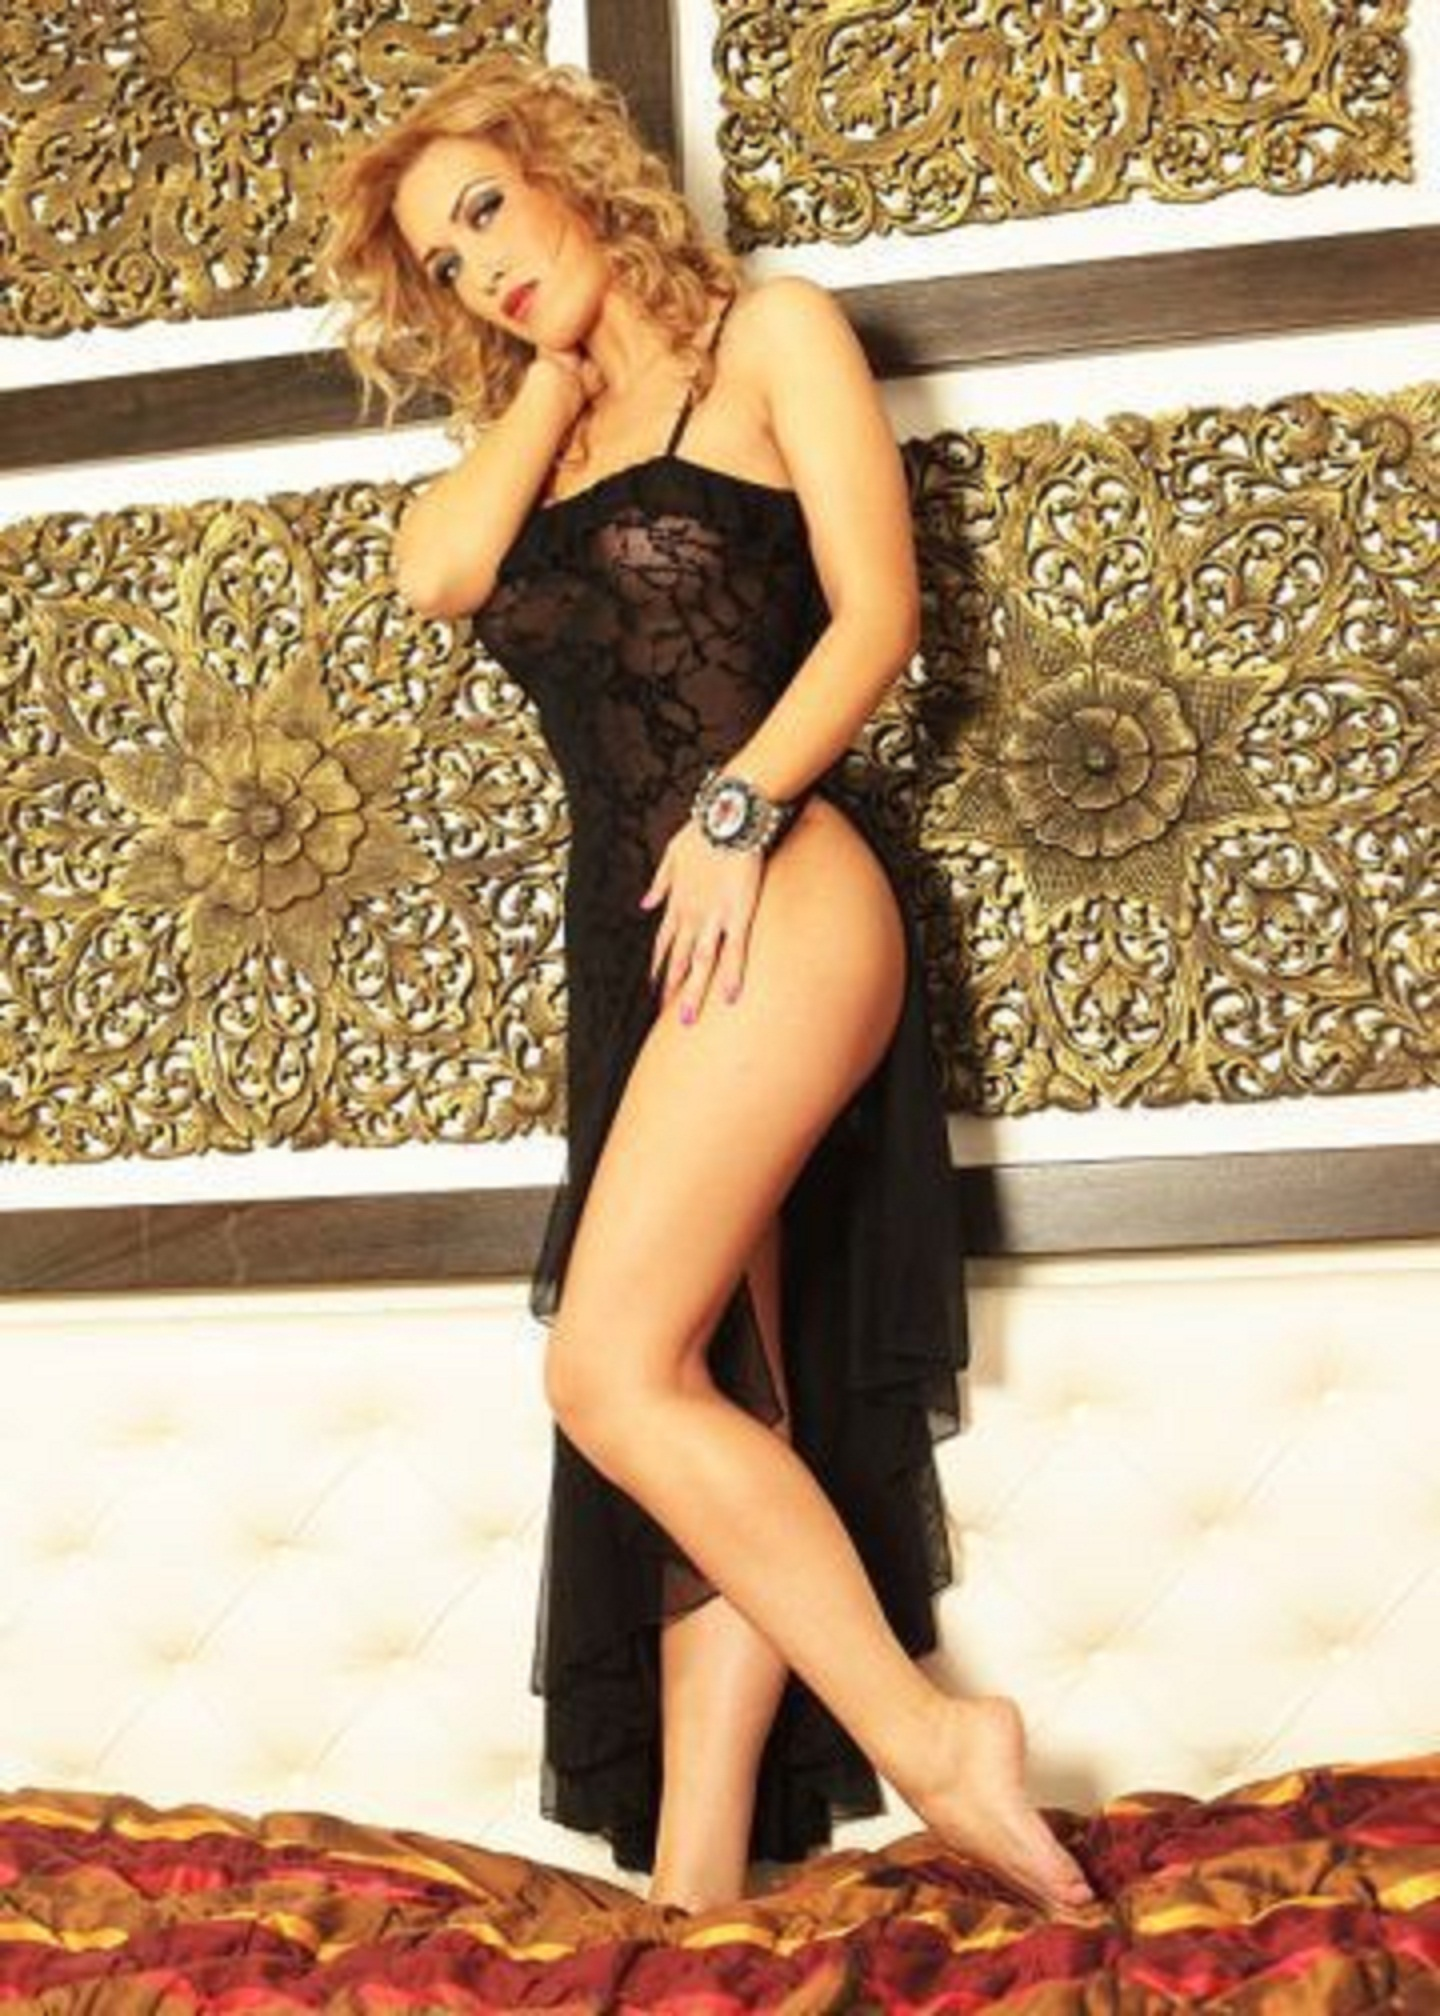 Anna escort in Amsterdam only for mans! - Afbeelding4